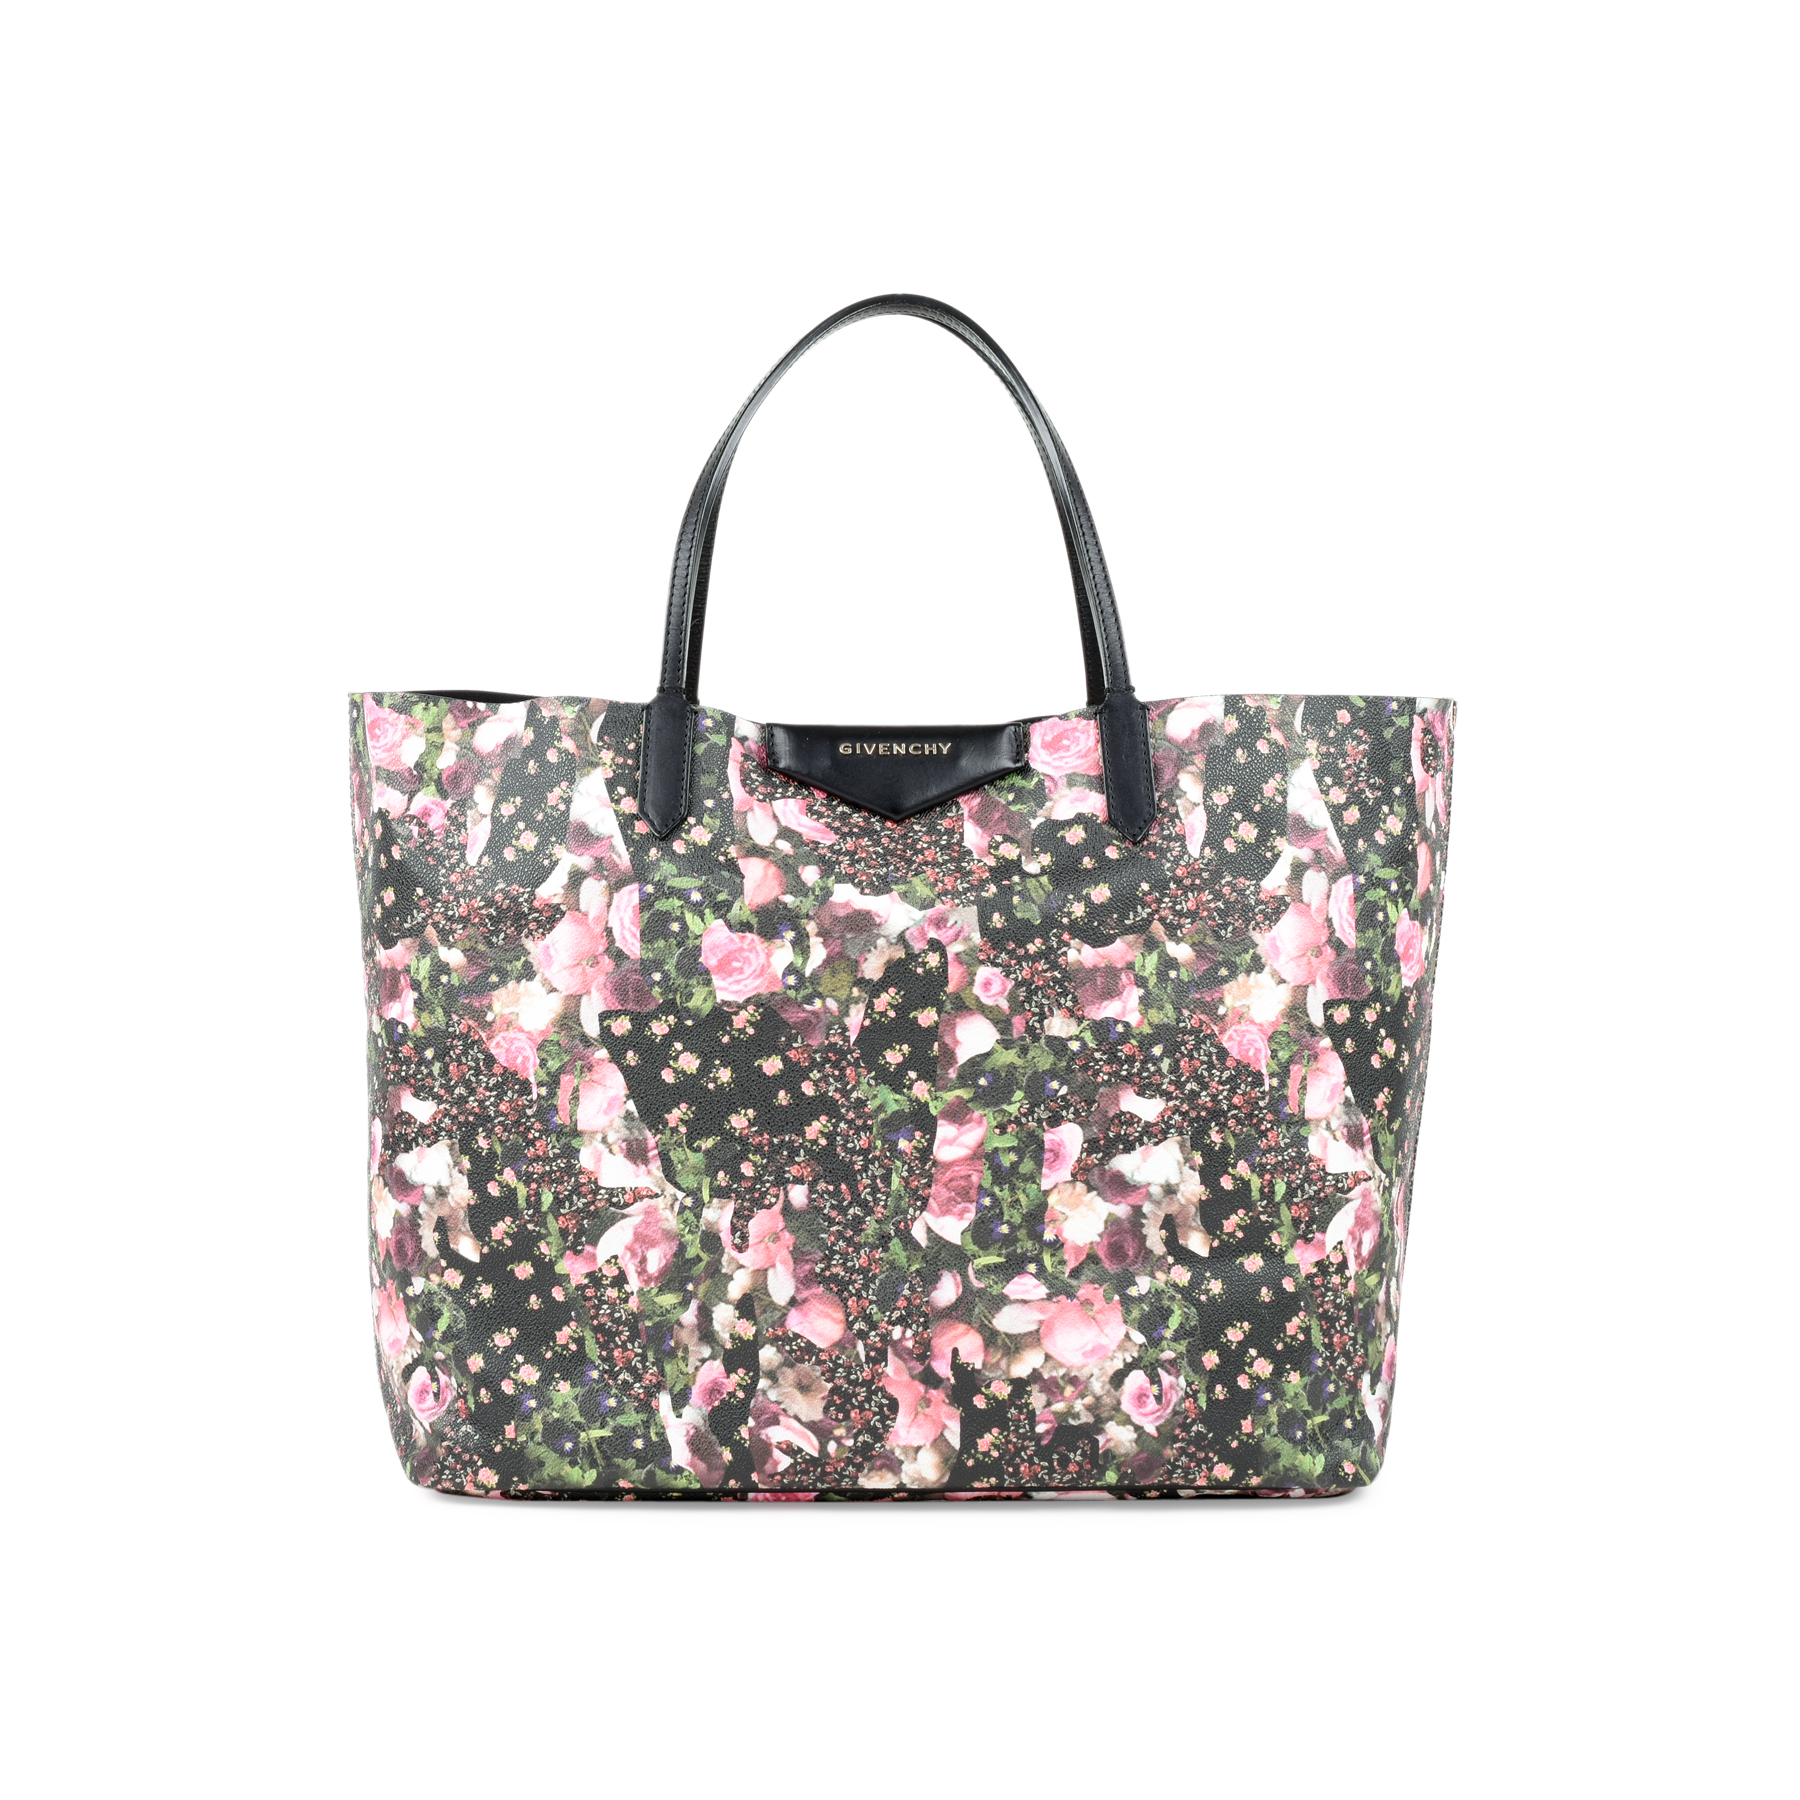 300b0ed3281 Authentic Second Hand Givenchy Antigona Floral Print Tote Bag  (PSS-464-00010) - THE FIFTH COLLECTION